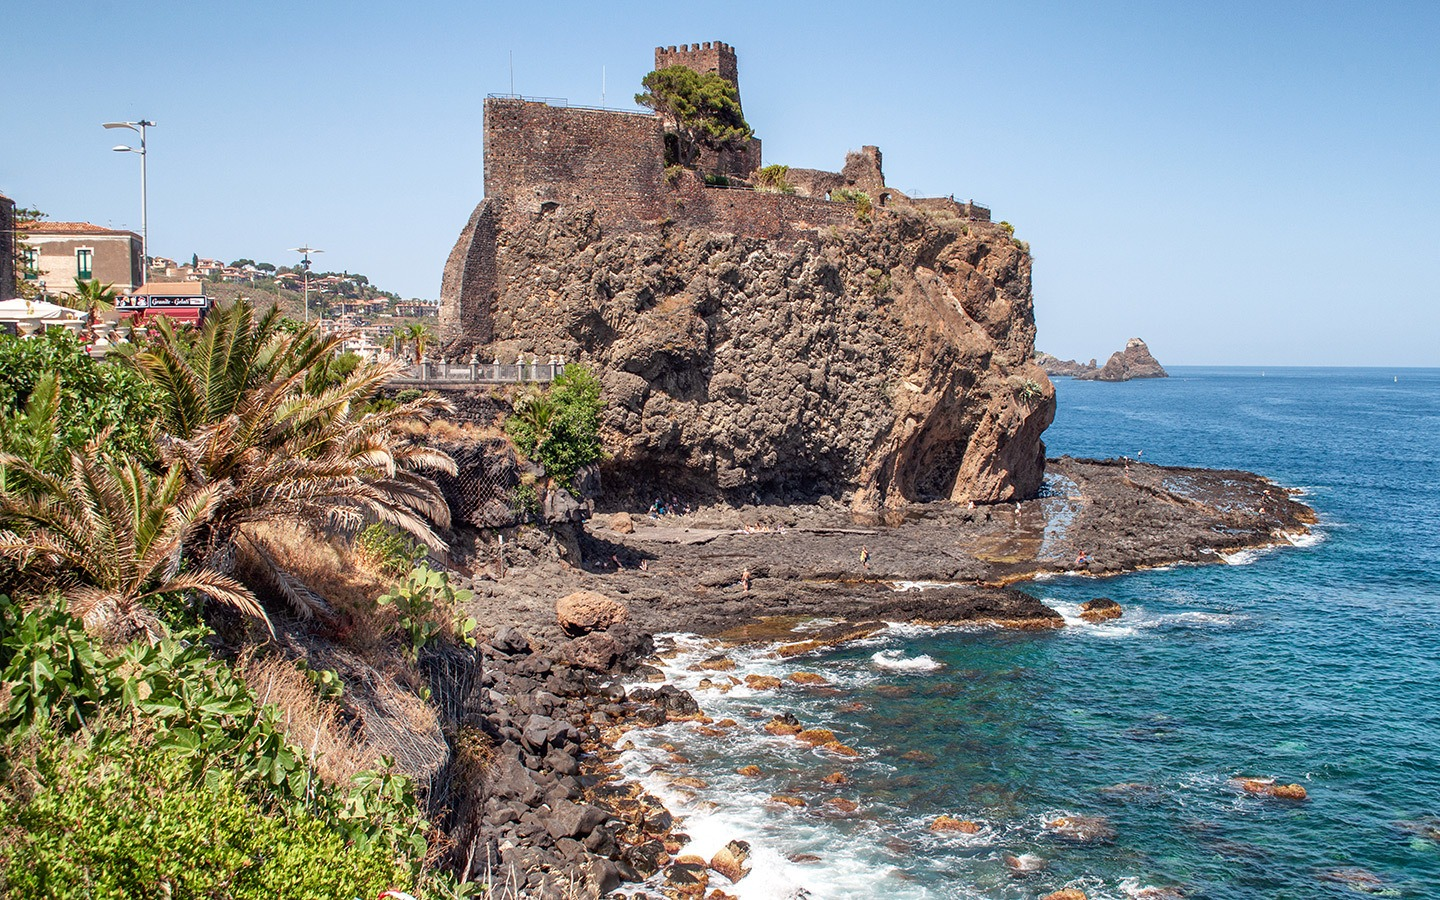 Aci Castello castle in Sicily